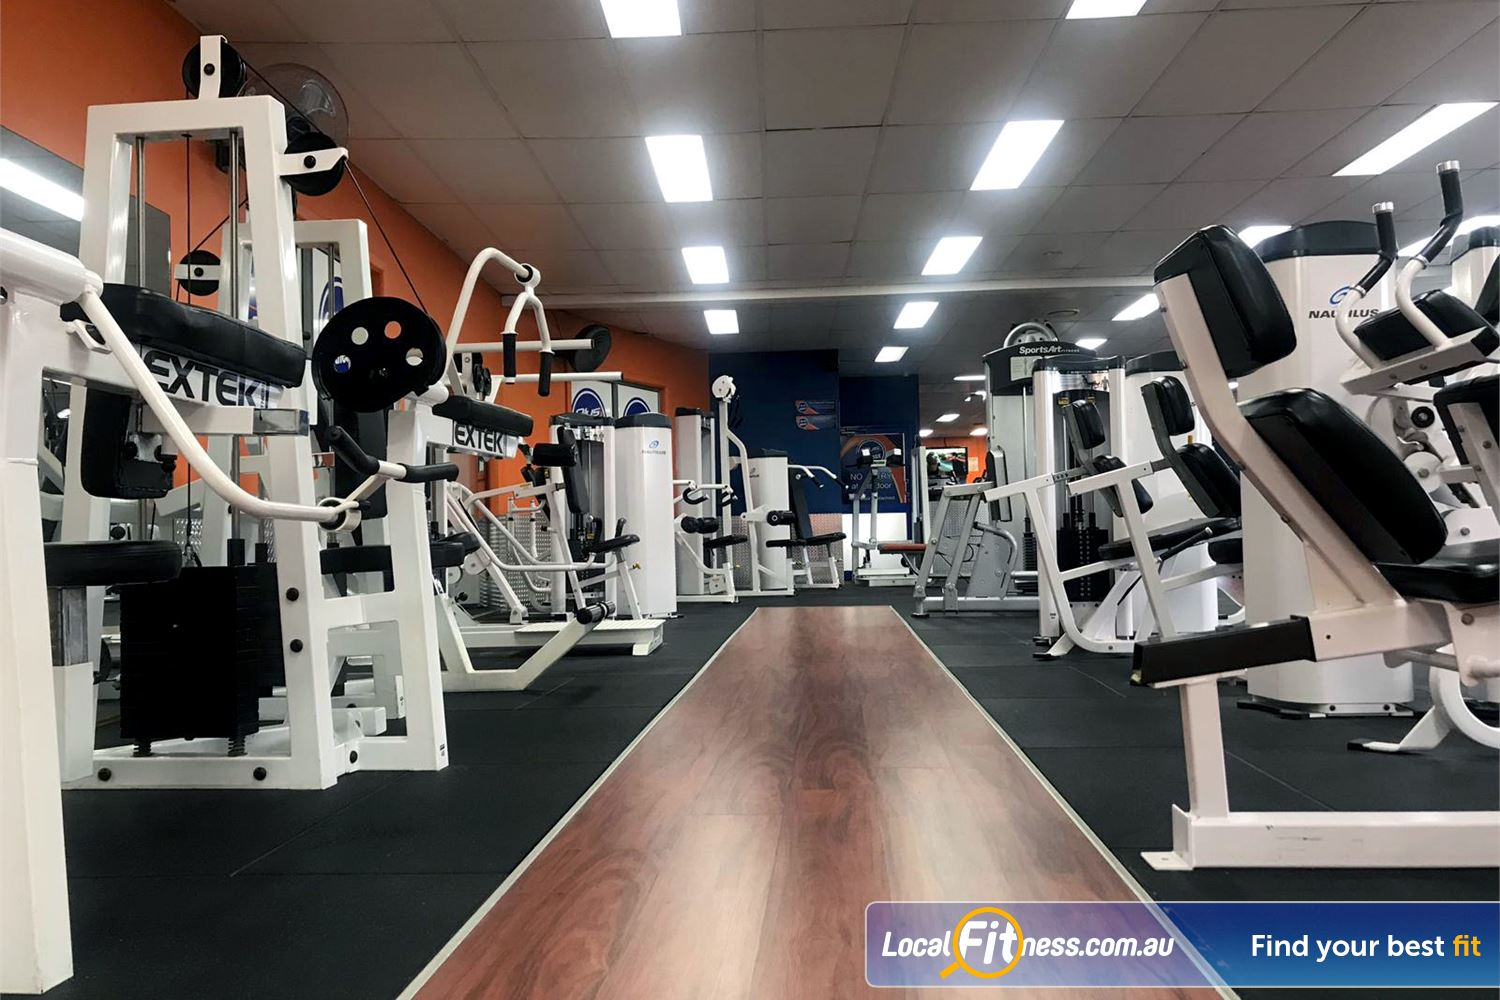 Plus Fitness Health Clubs Northmead Welcome to the state of the art Plus Fitness Northmead gym.